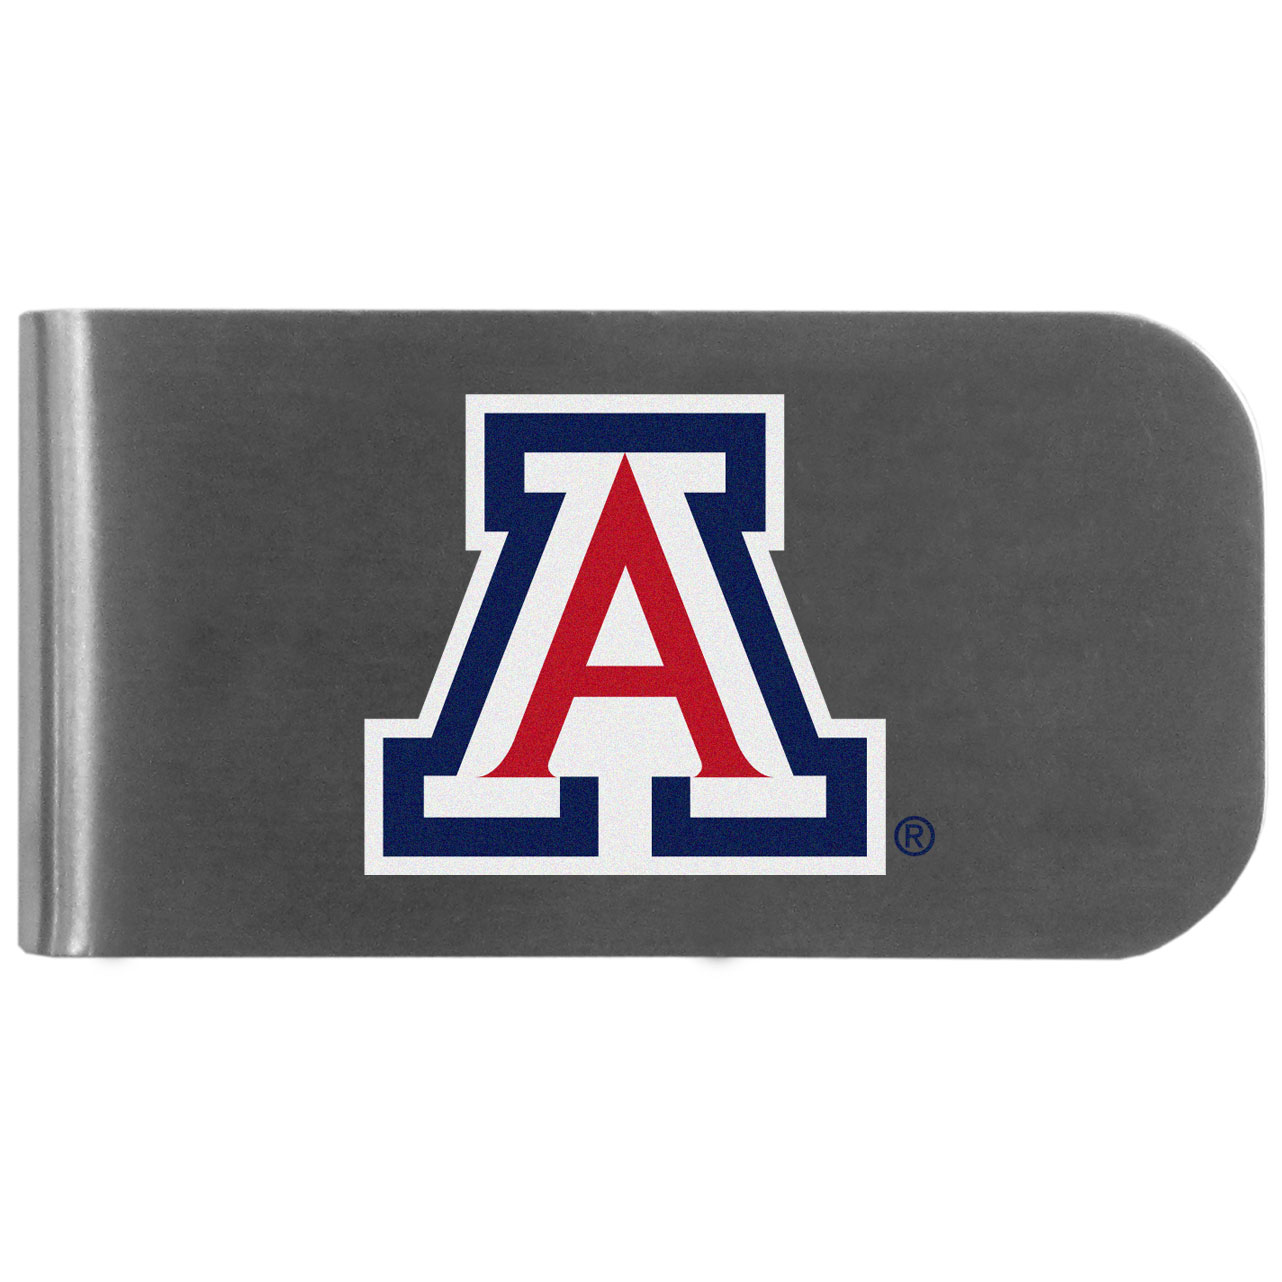 Arizona Wildcats Logo Bottle Opener Money Clip - This unique money clip features a classic, brushed-metal finish with a handy bottle opener feature on the back. The clip has the Arizona Wildcats logo expertly printed on the front of the clip.